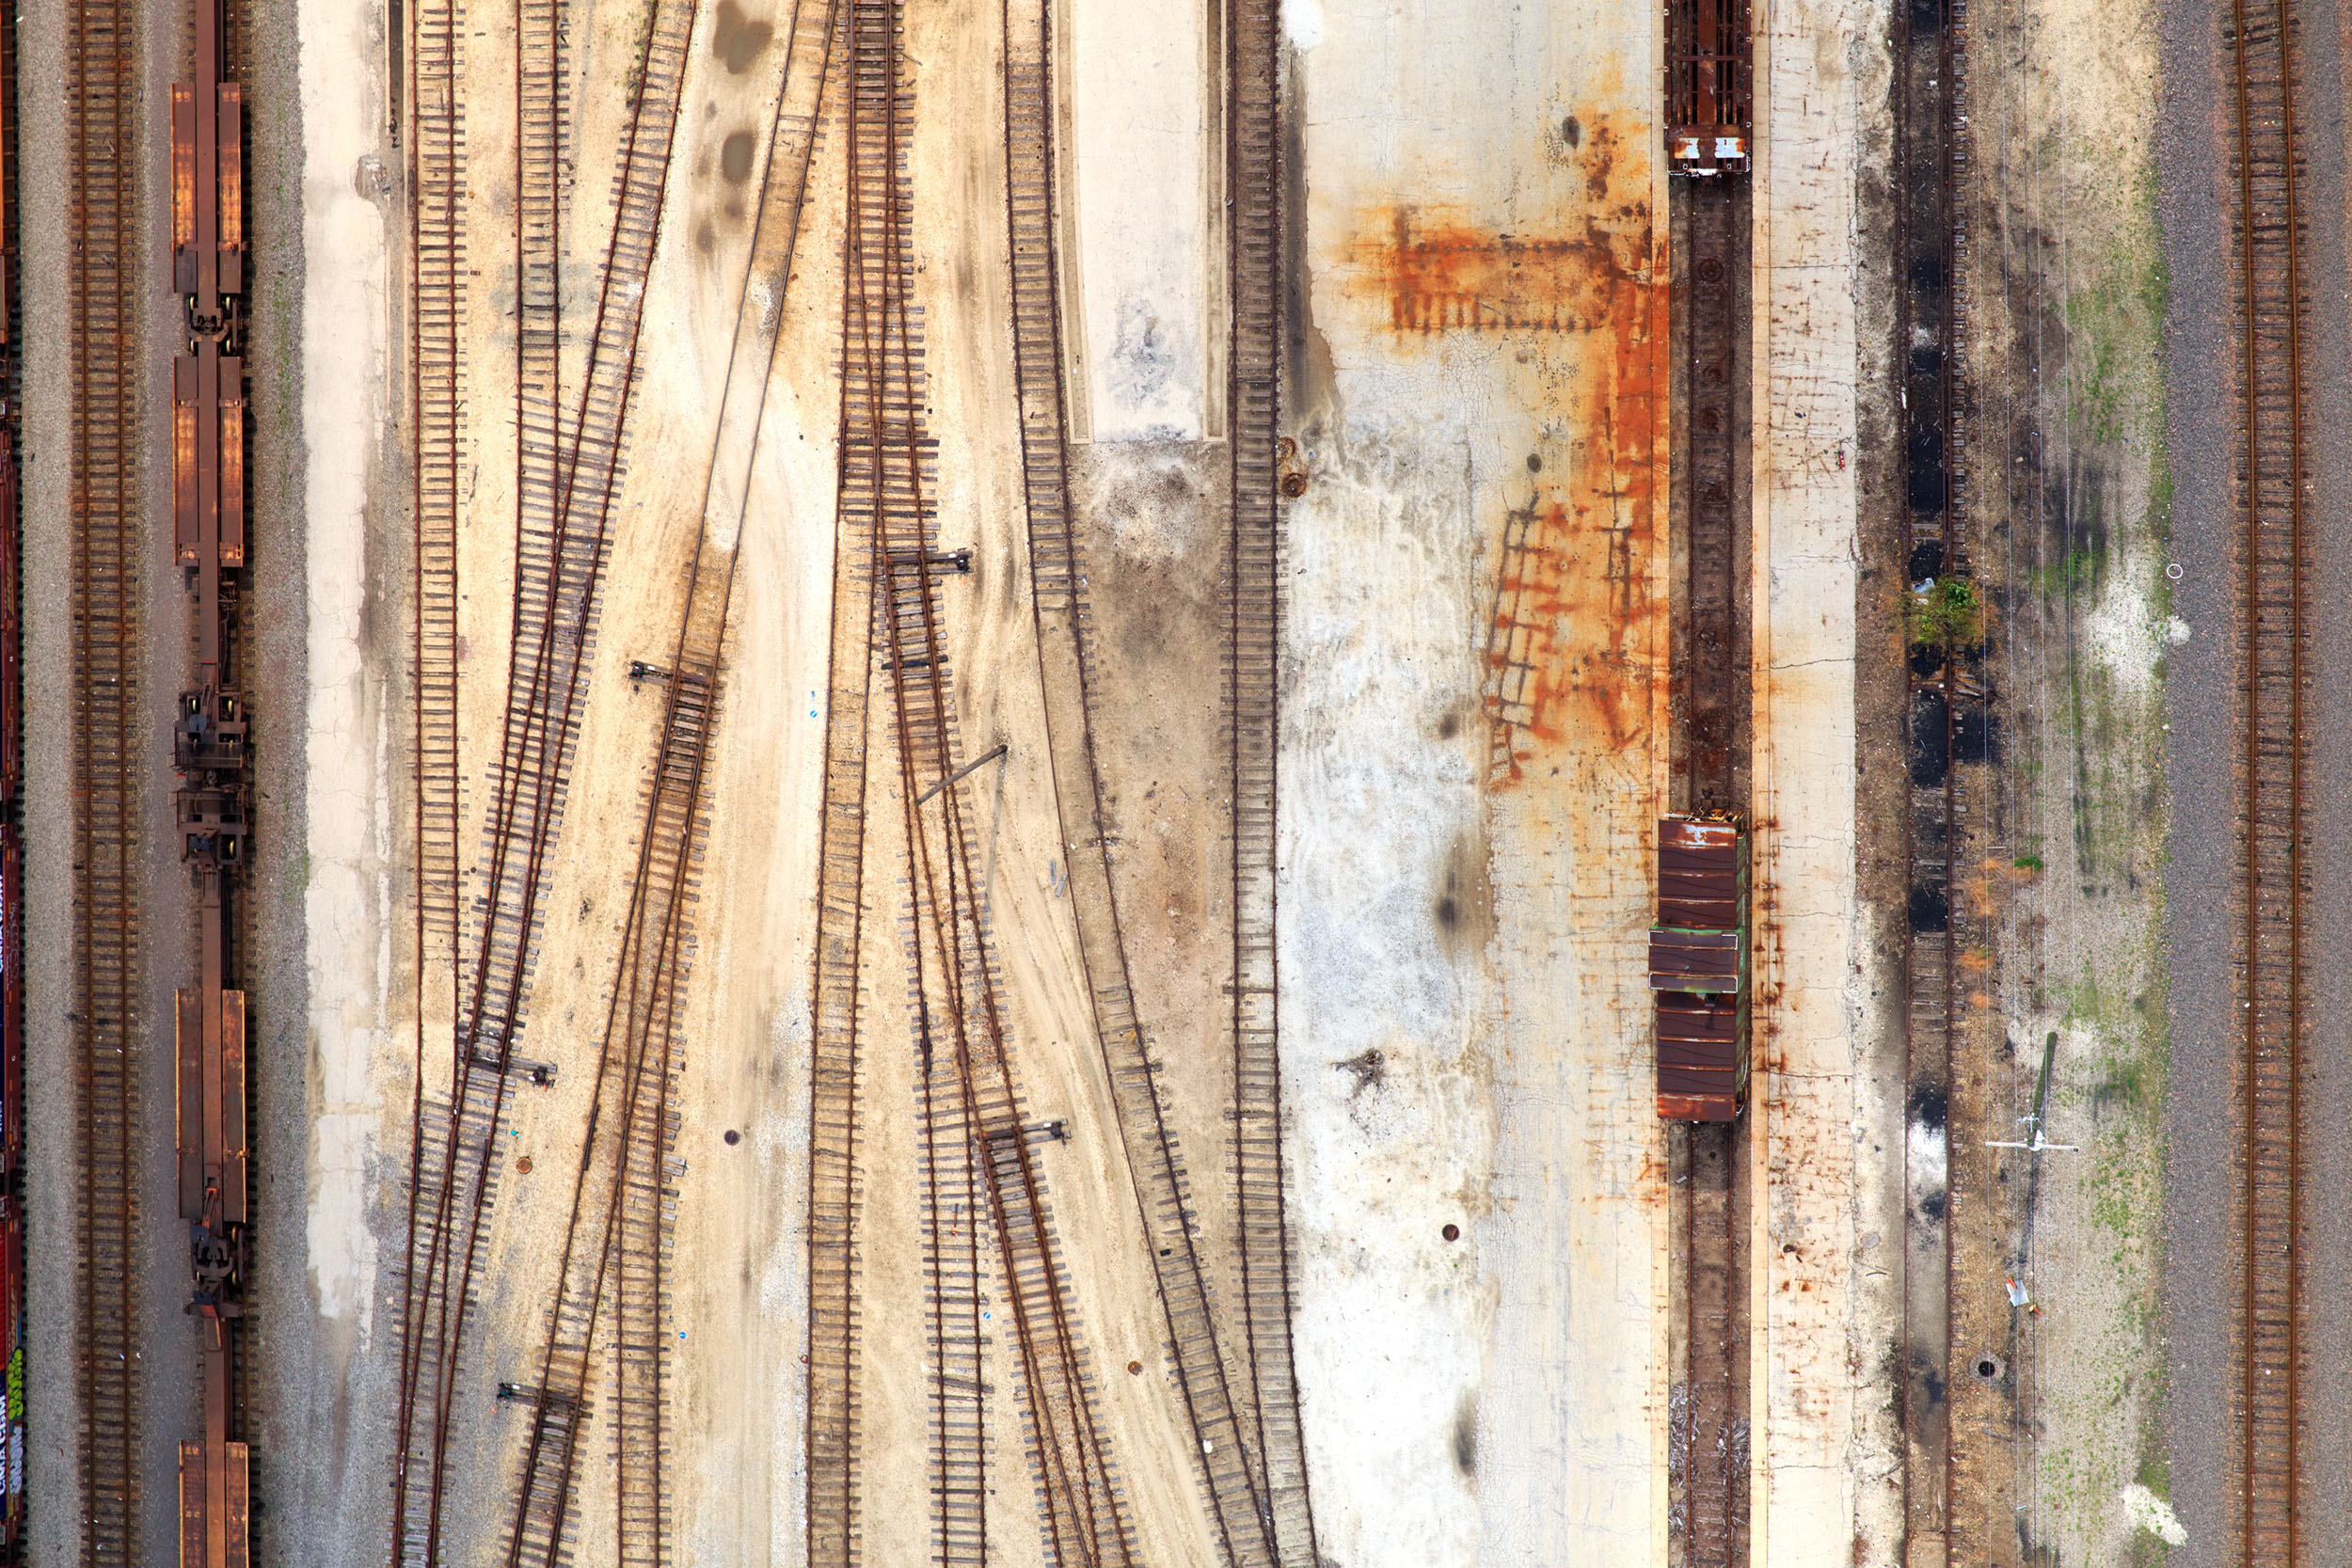 Tom Lamb, Brush Strokes, Railyards, Chicago, Il, 2015 30 x 24 inches Aerial Photography